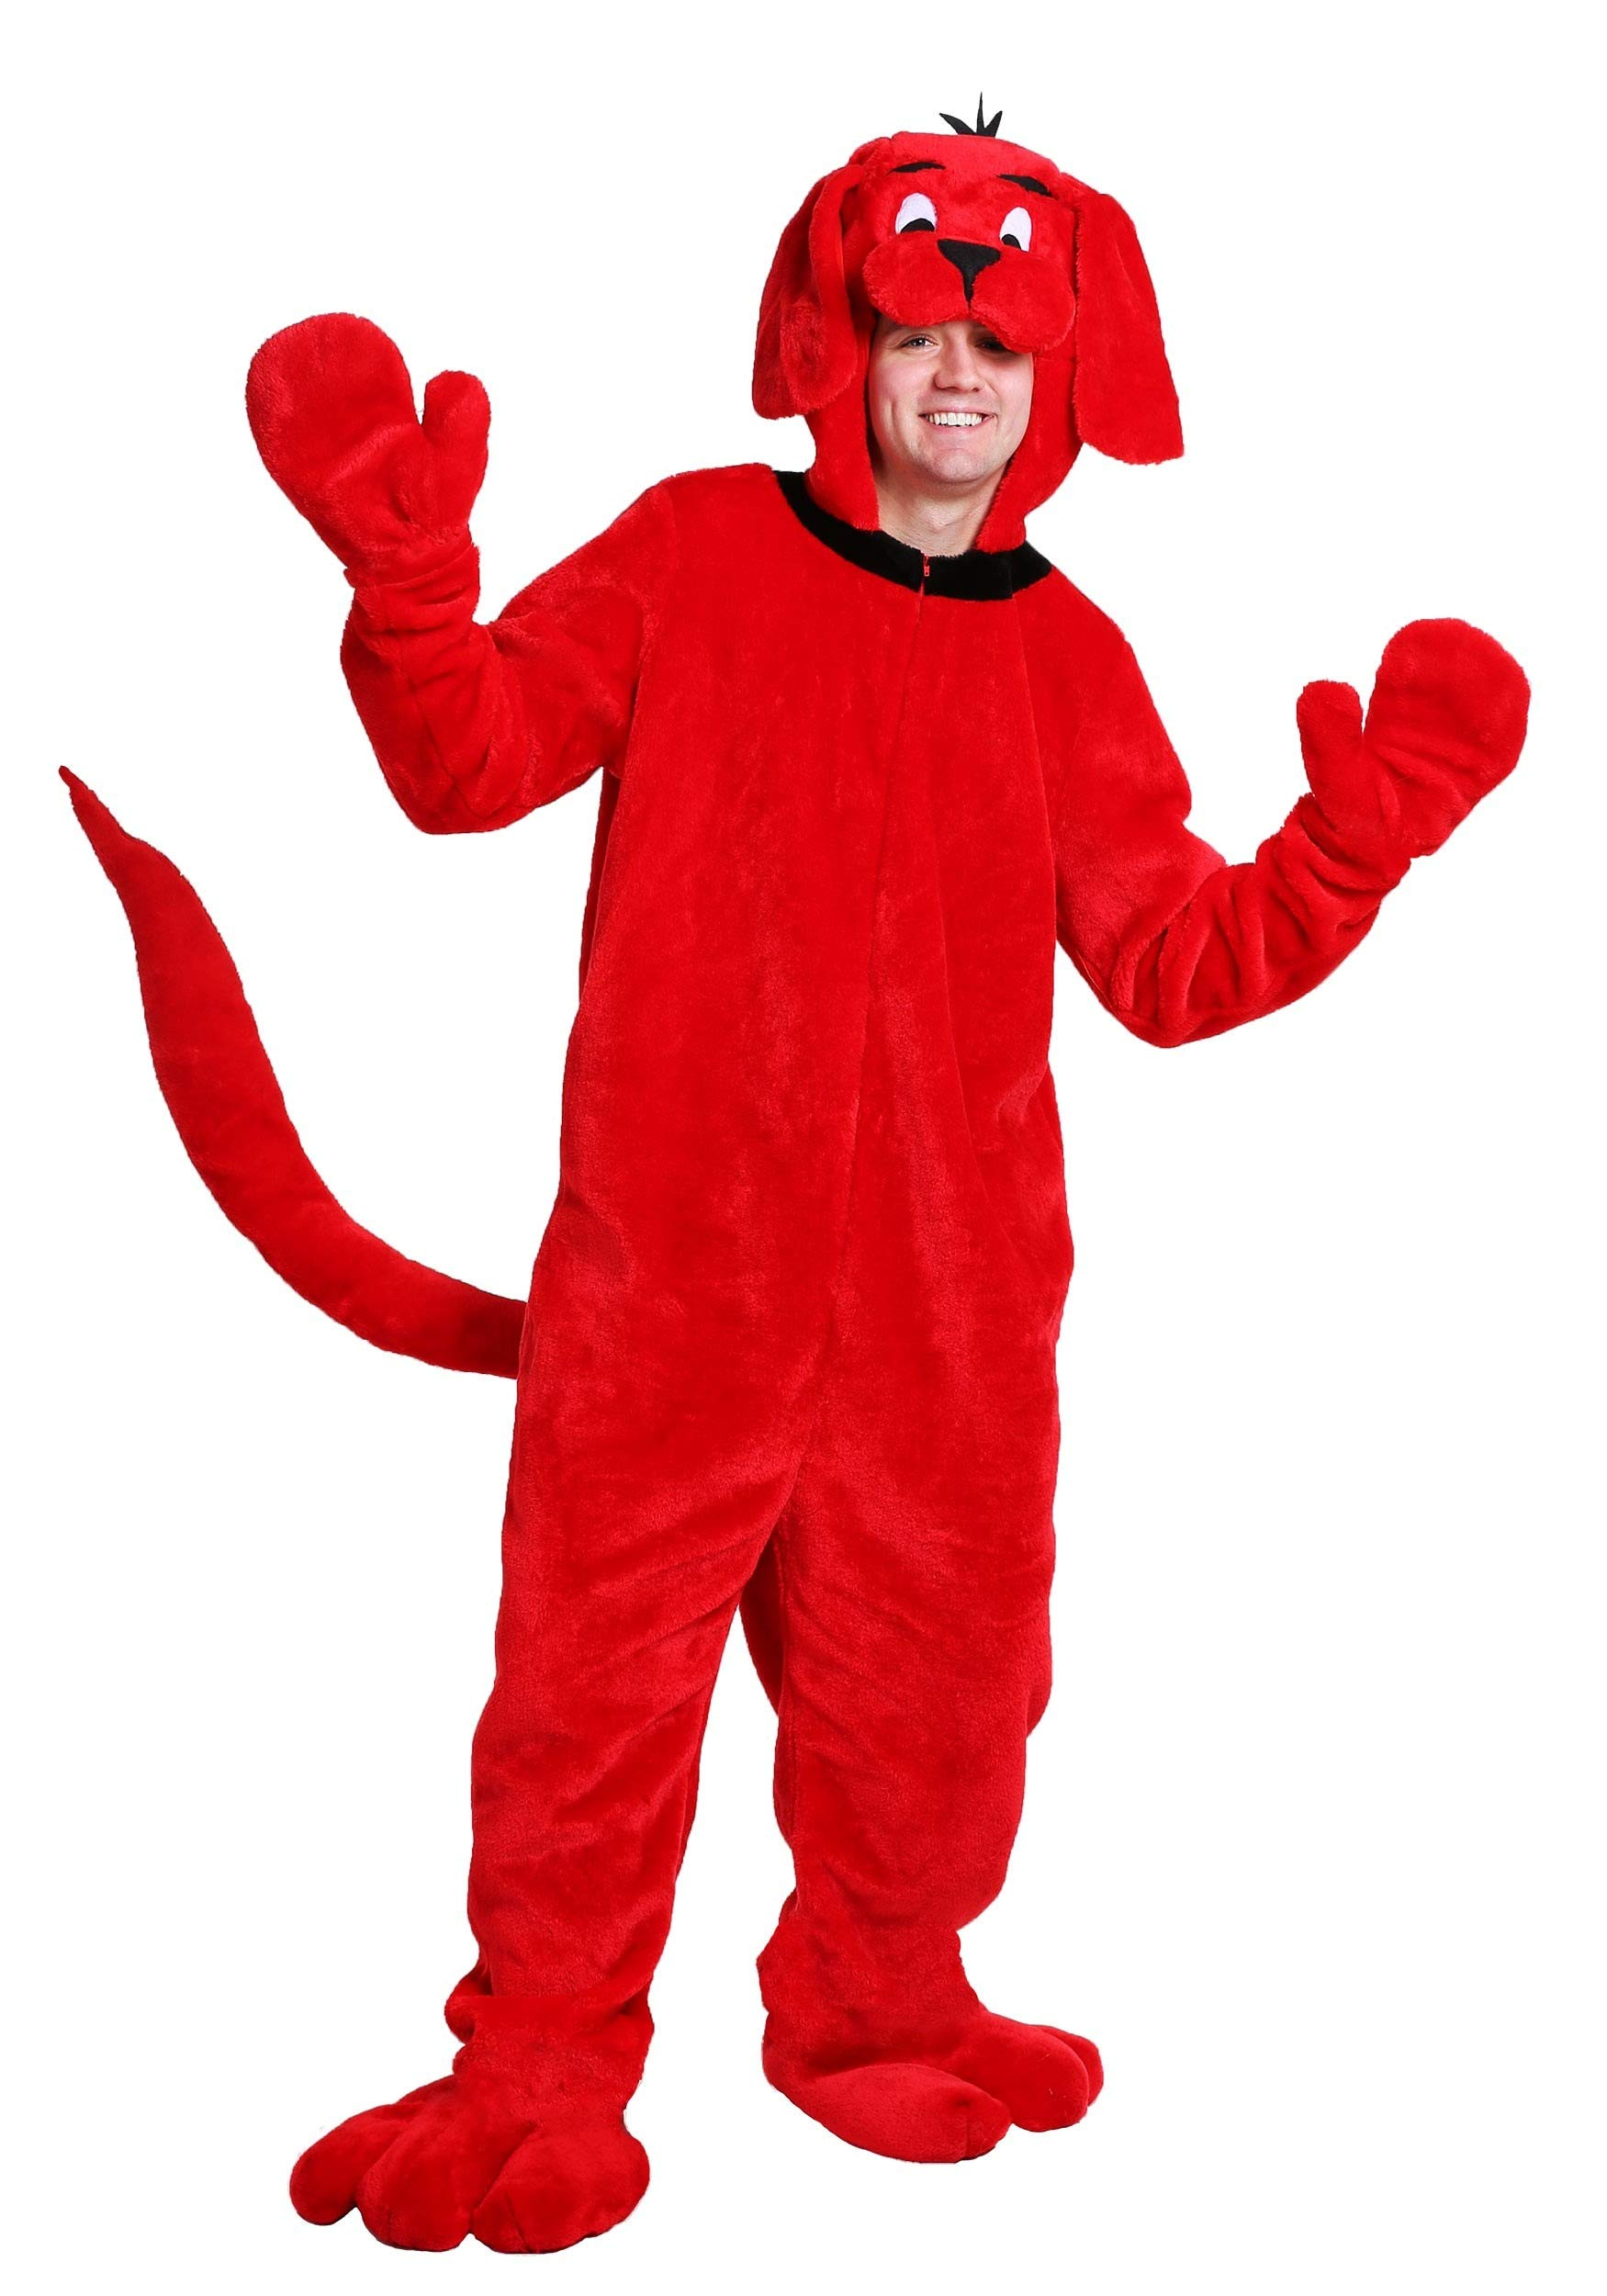 Clifford The Big Red Dog Plus Size Adult Costume 2X by Fun Costumes